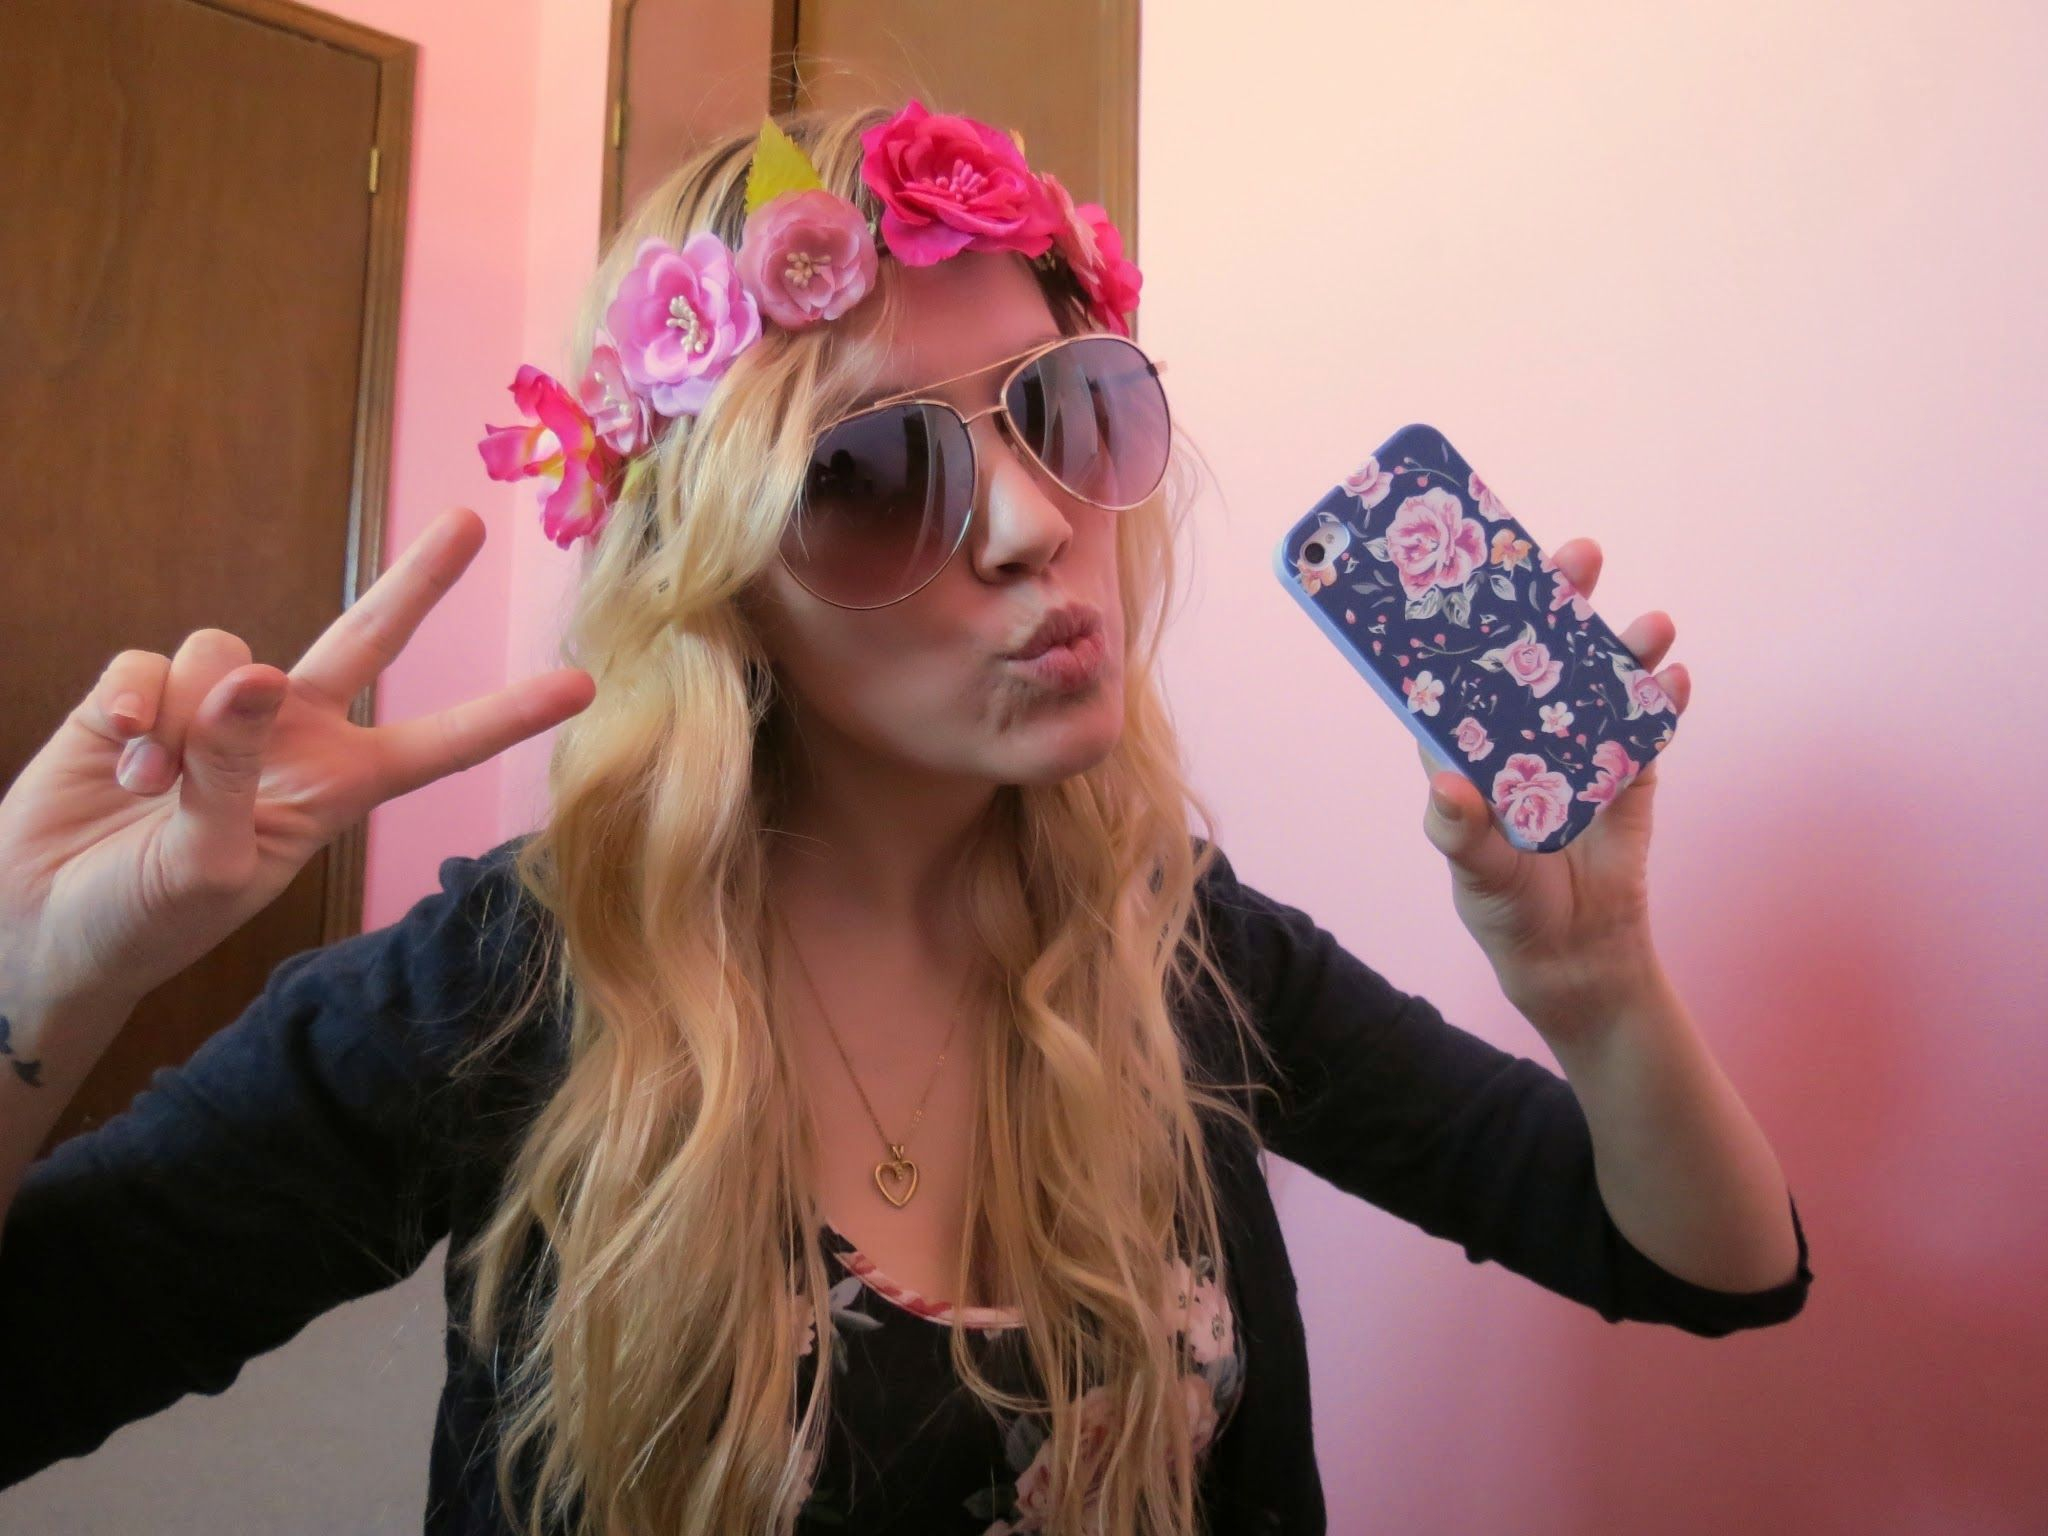 Flower power. Floral fashion. Flower crowns, and floral print iPhone cases.